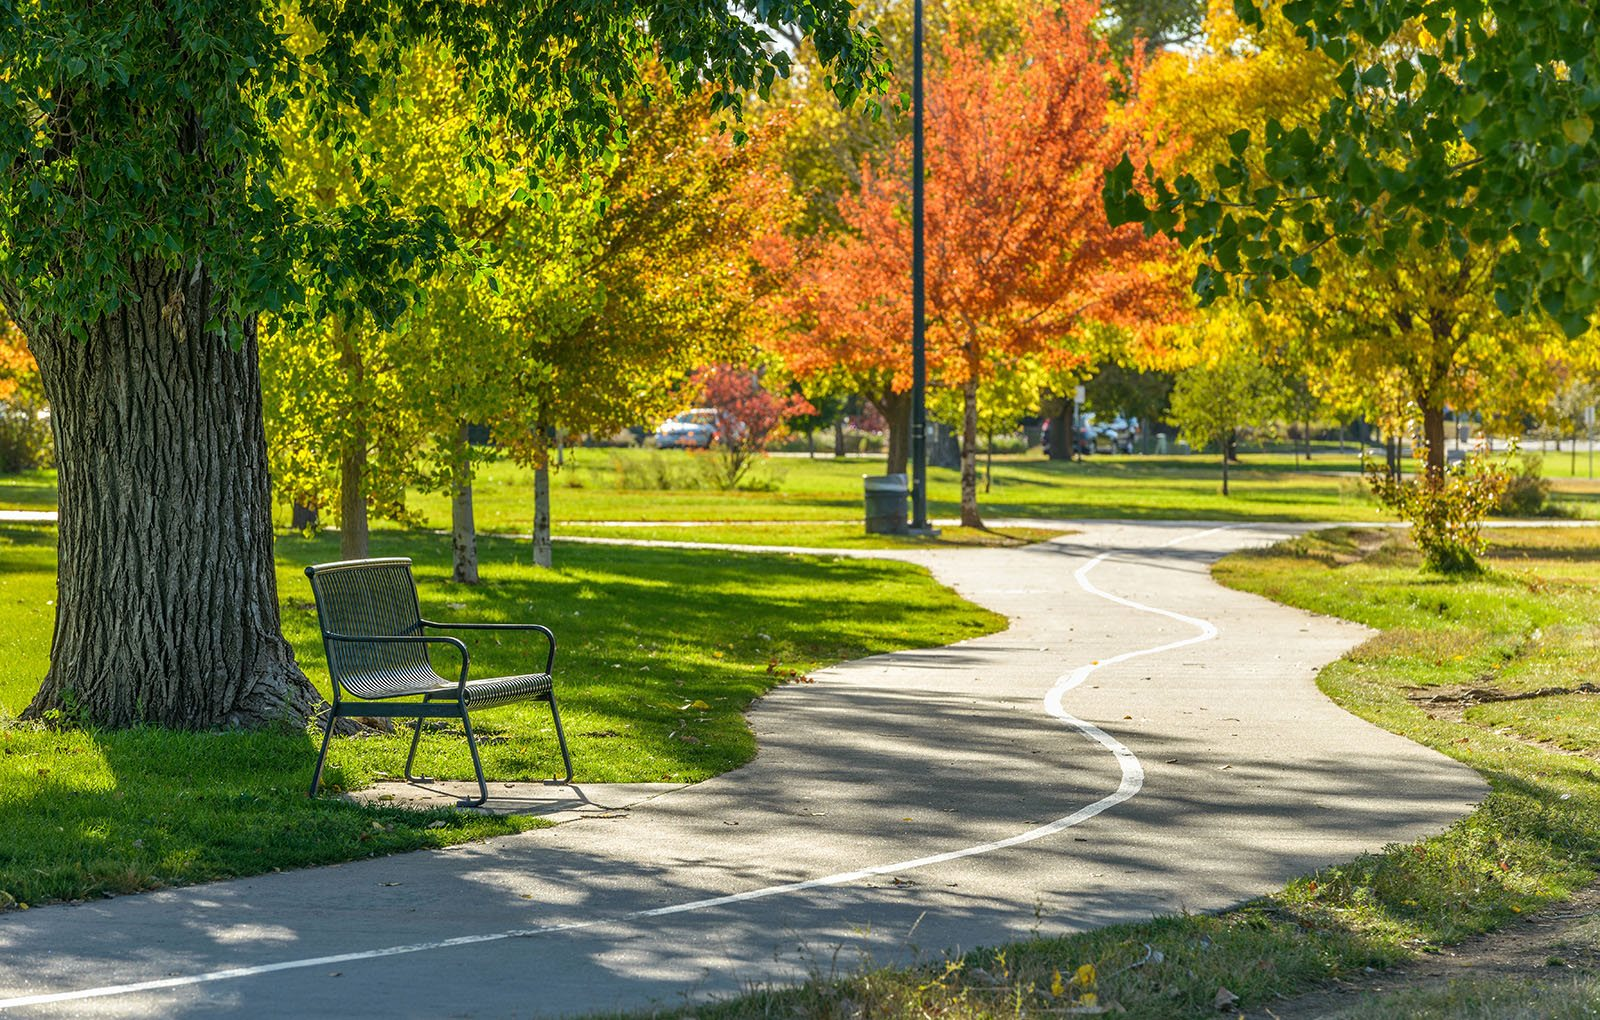 Park with bench and bike path